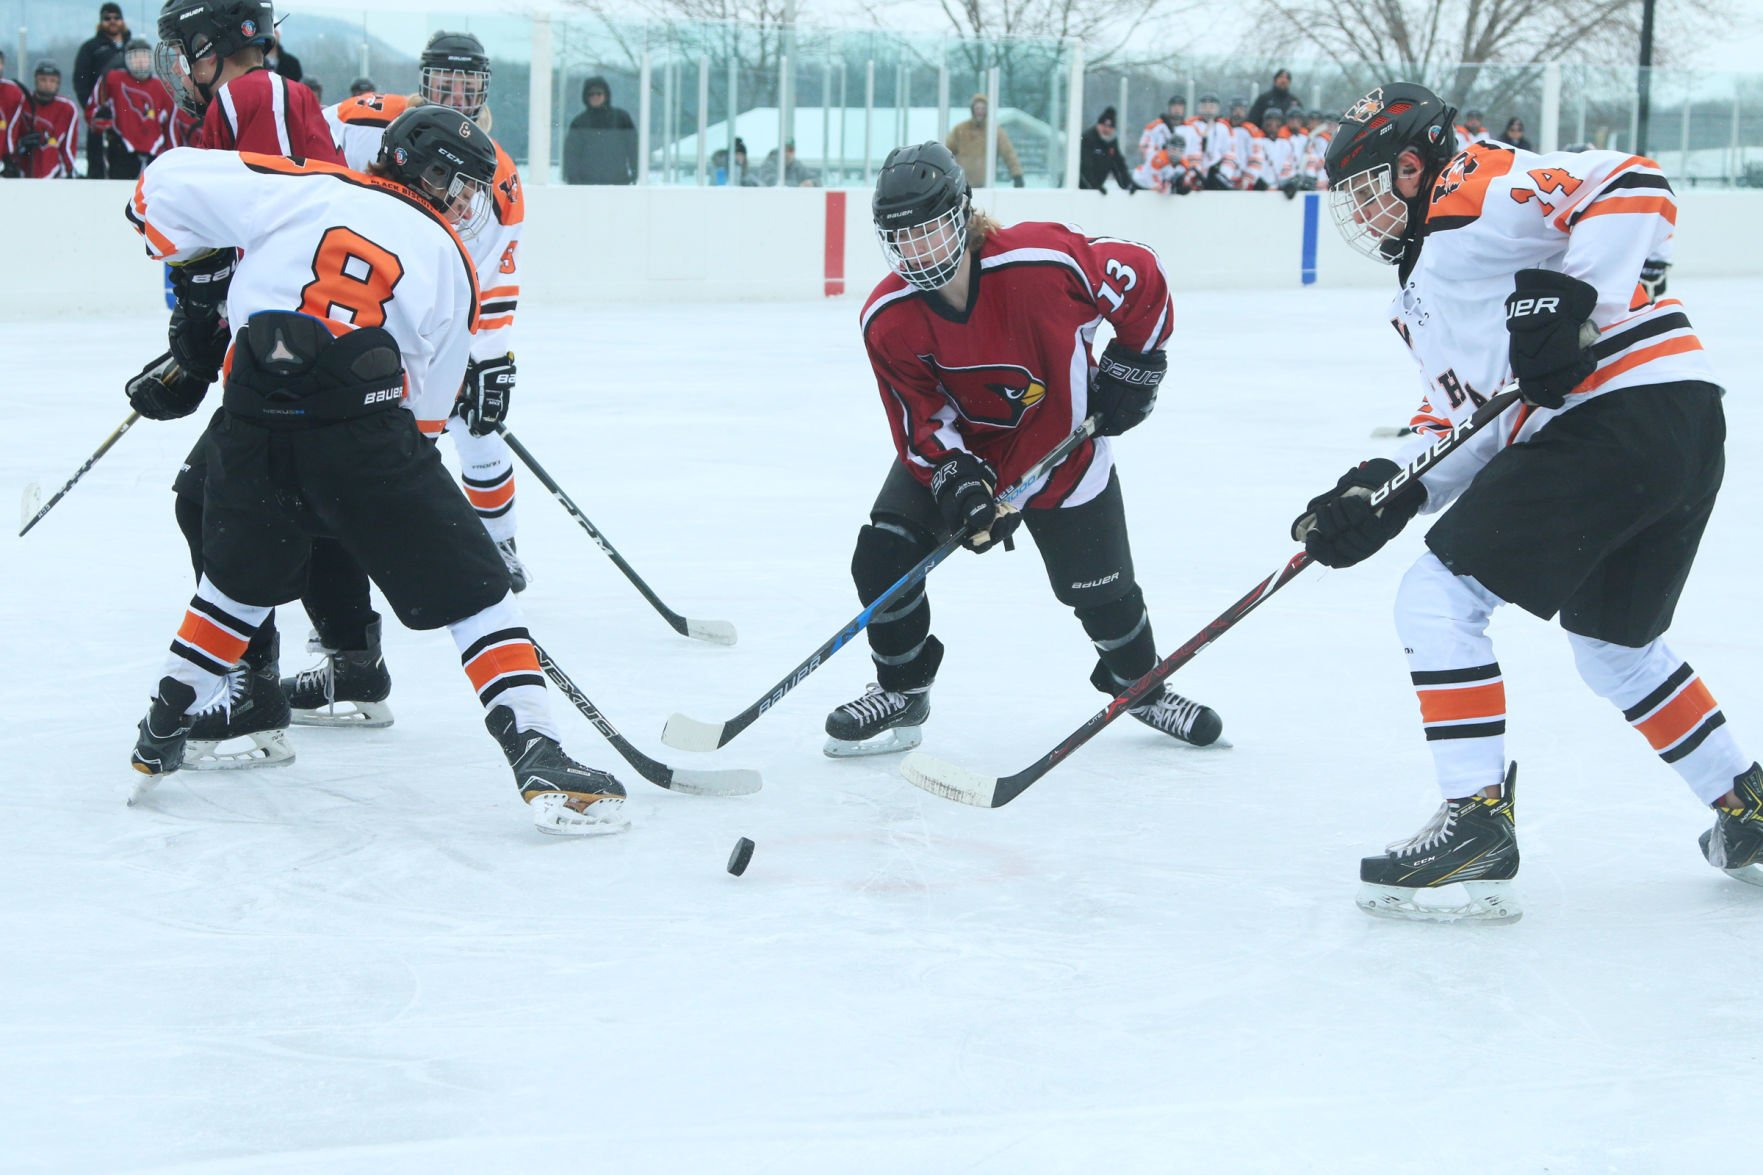 MN H.S.: Winona Wins Outdoor Game 7-2